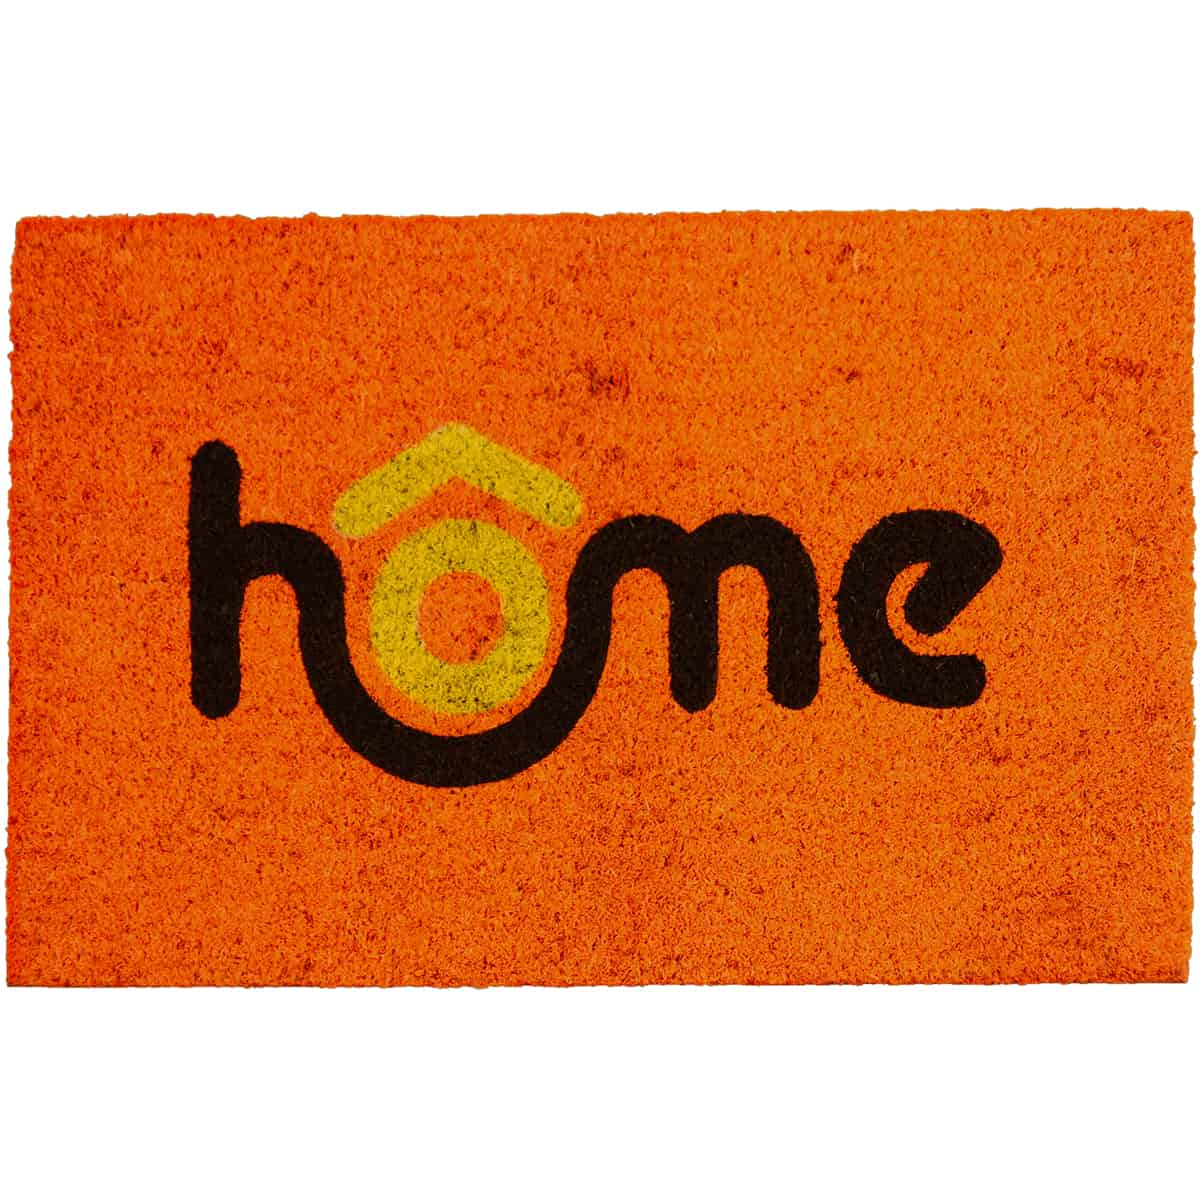 Sheltered Printed Front Door Mat Home Coir Coco Fibers Rug 24x16 Orange, Black and Yellow